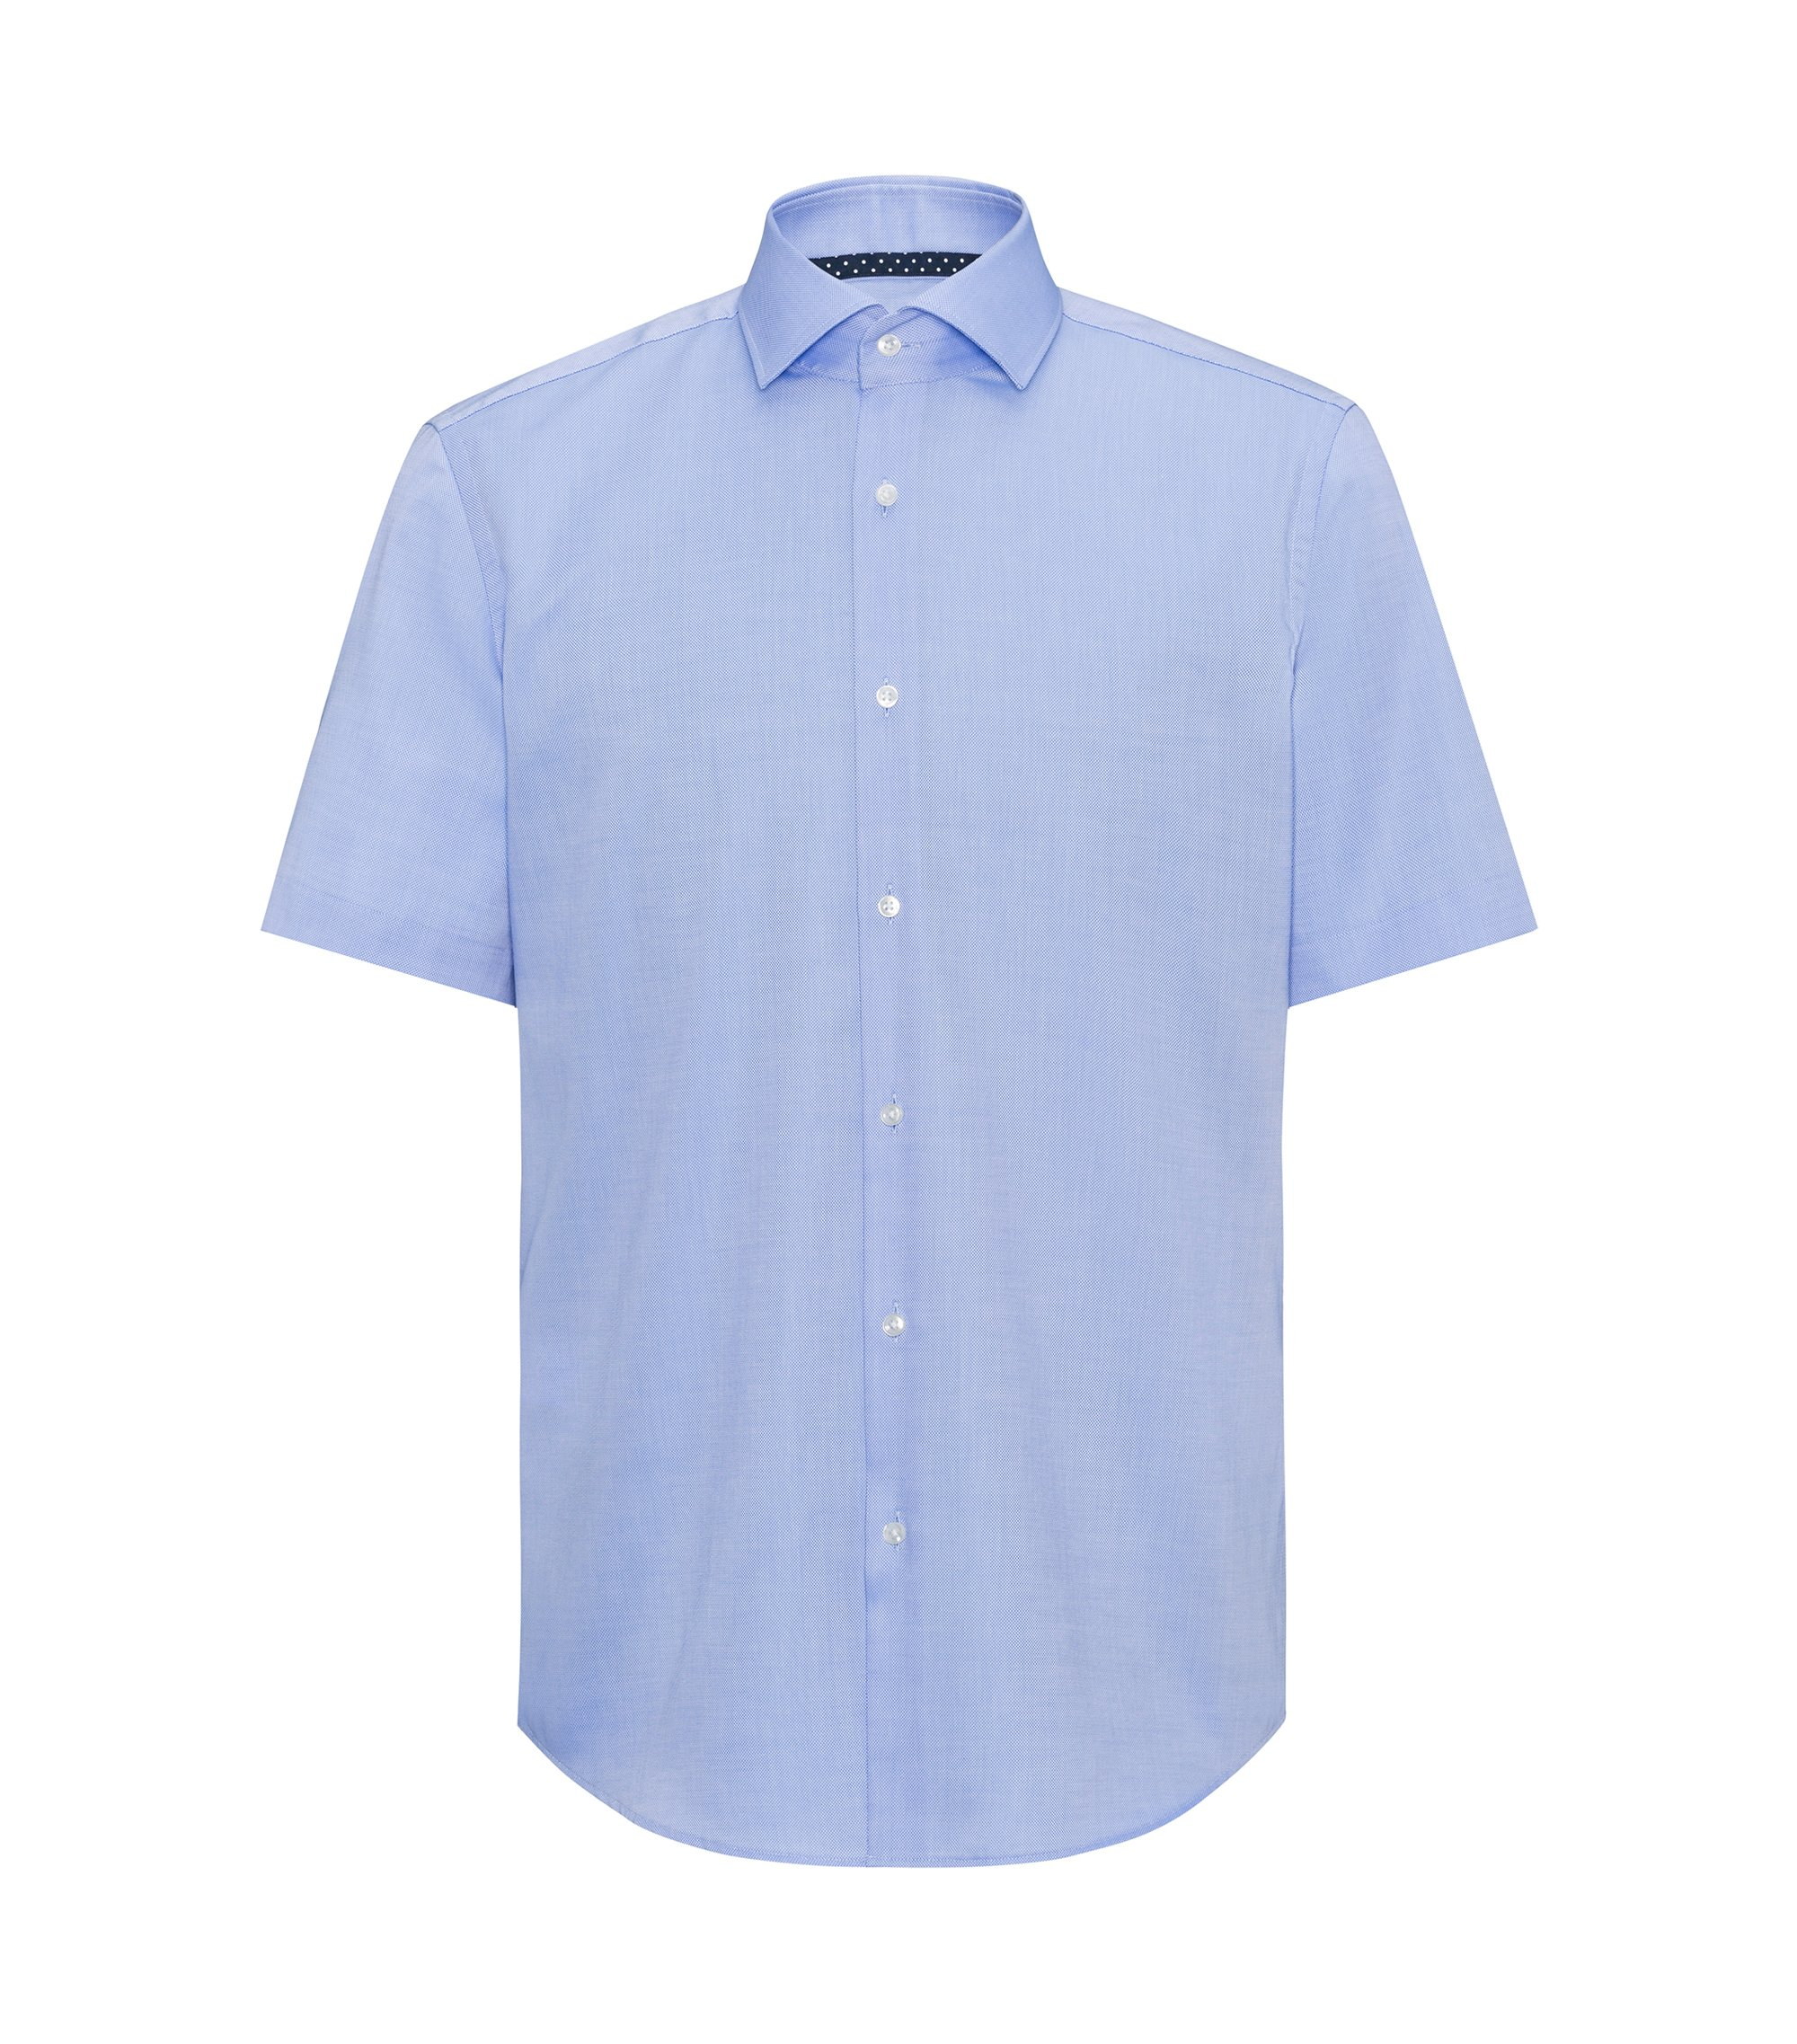 Camicia a maniche corte regular fit in cotone facile da stirare, Celeste